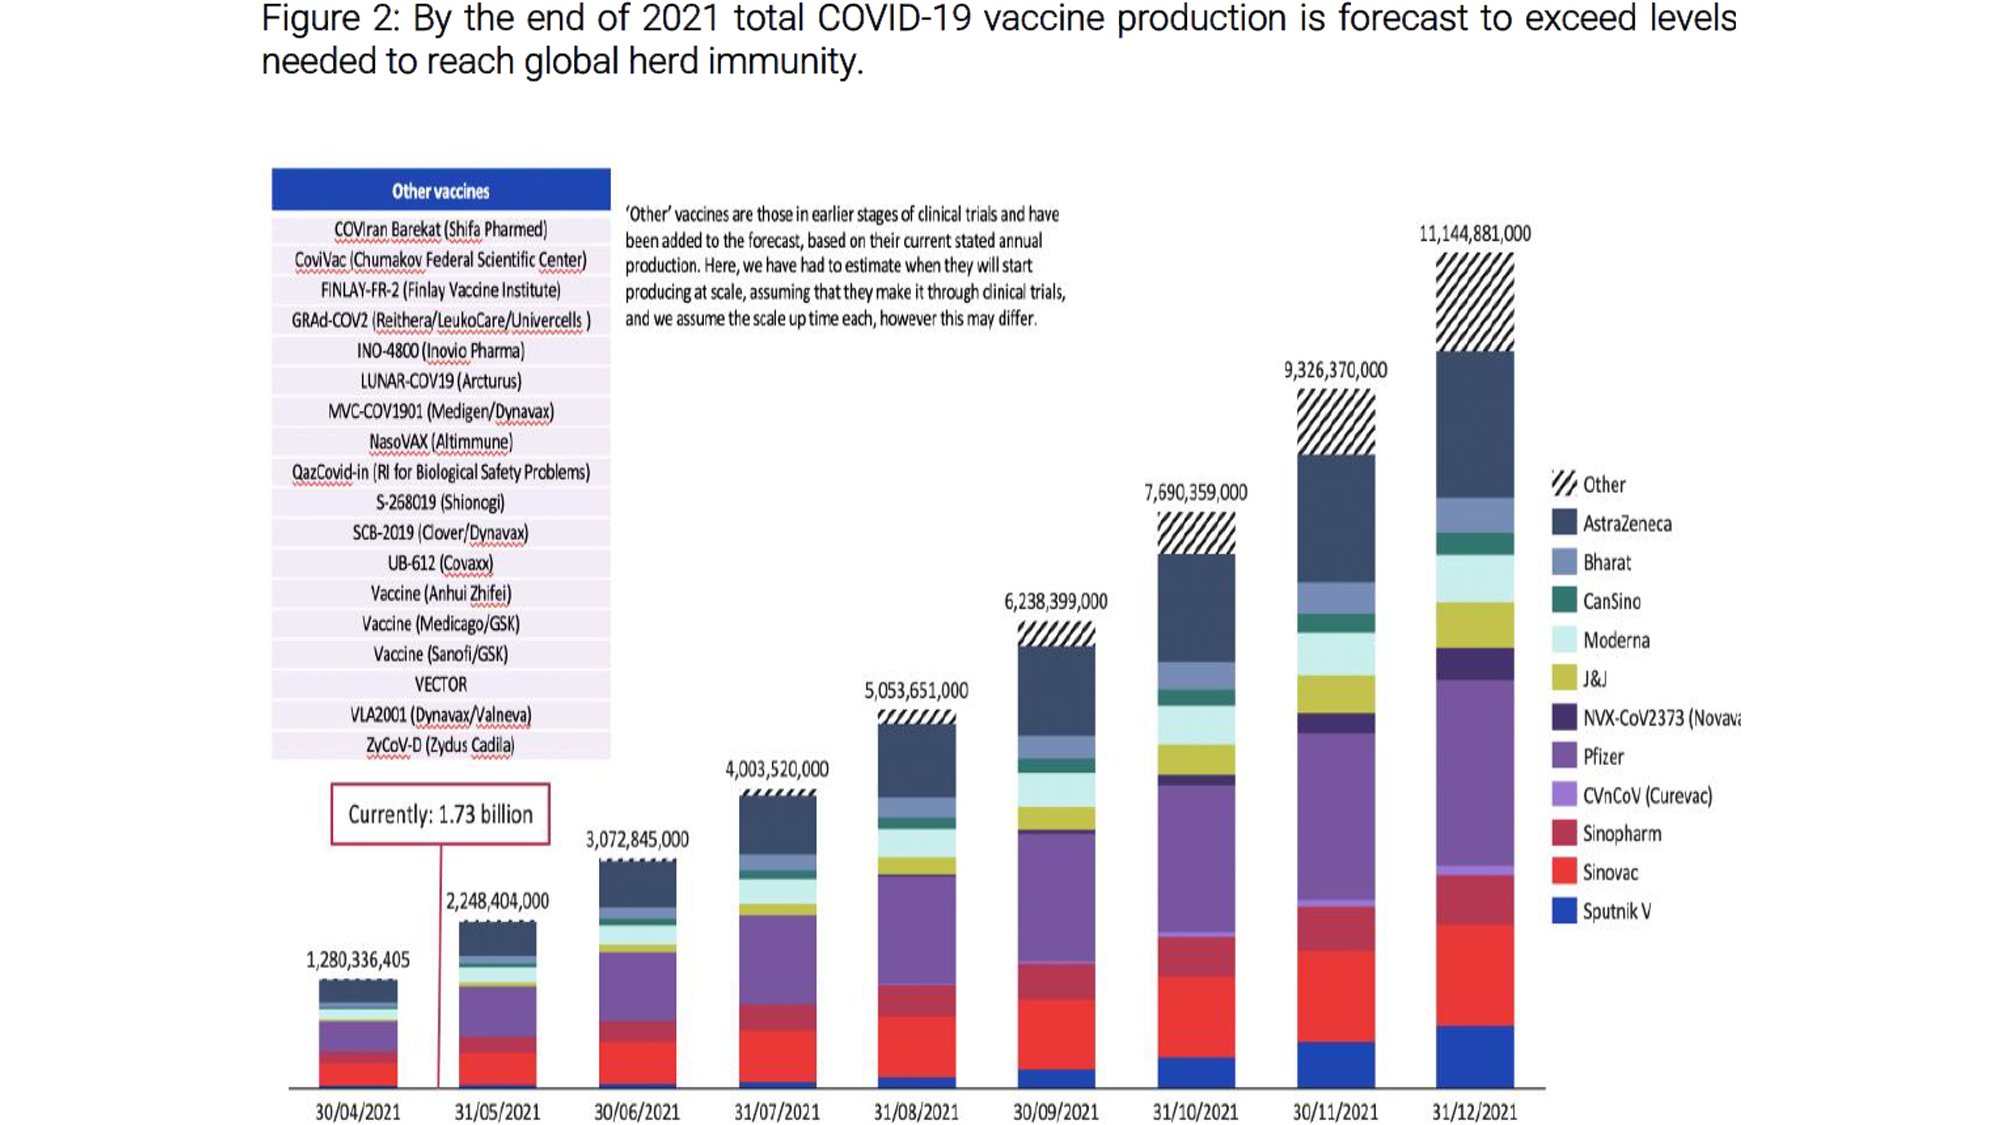 Figure 2: By the end of 2021 total COVID-19 vaccine production is forecast to exceed levels needed to reach global herd immunity.